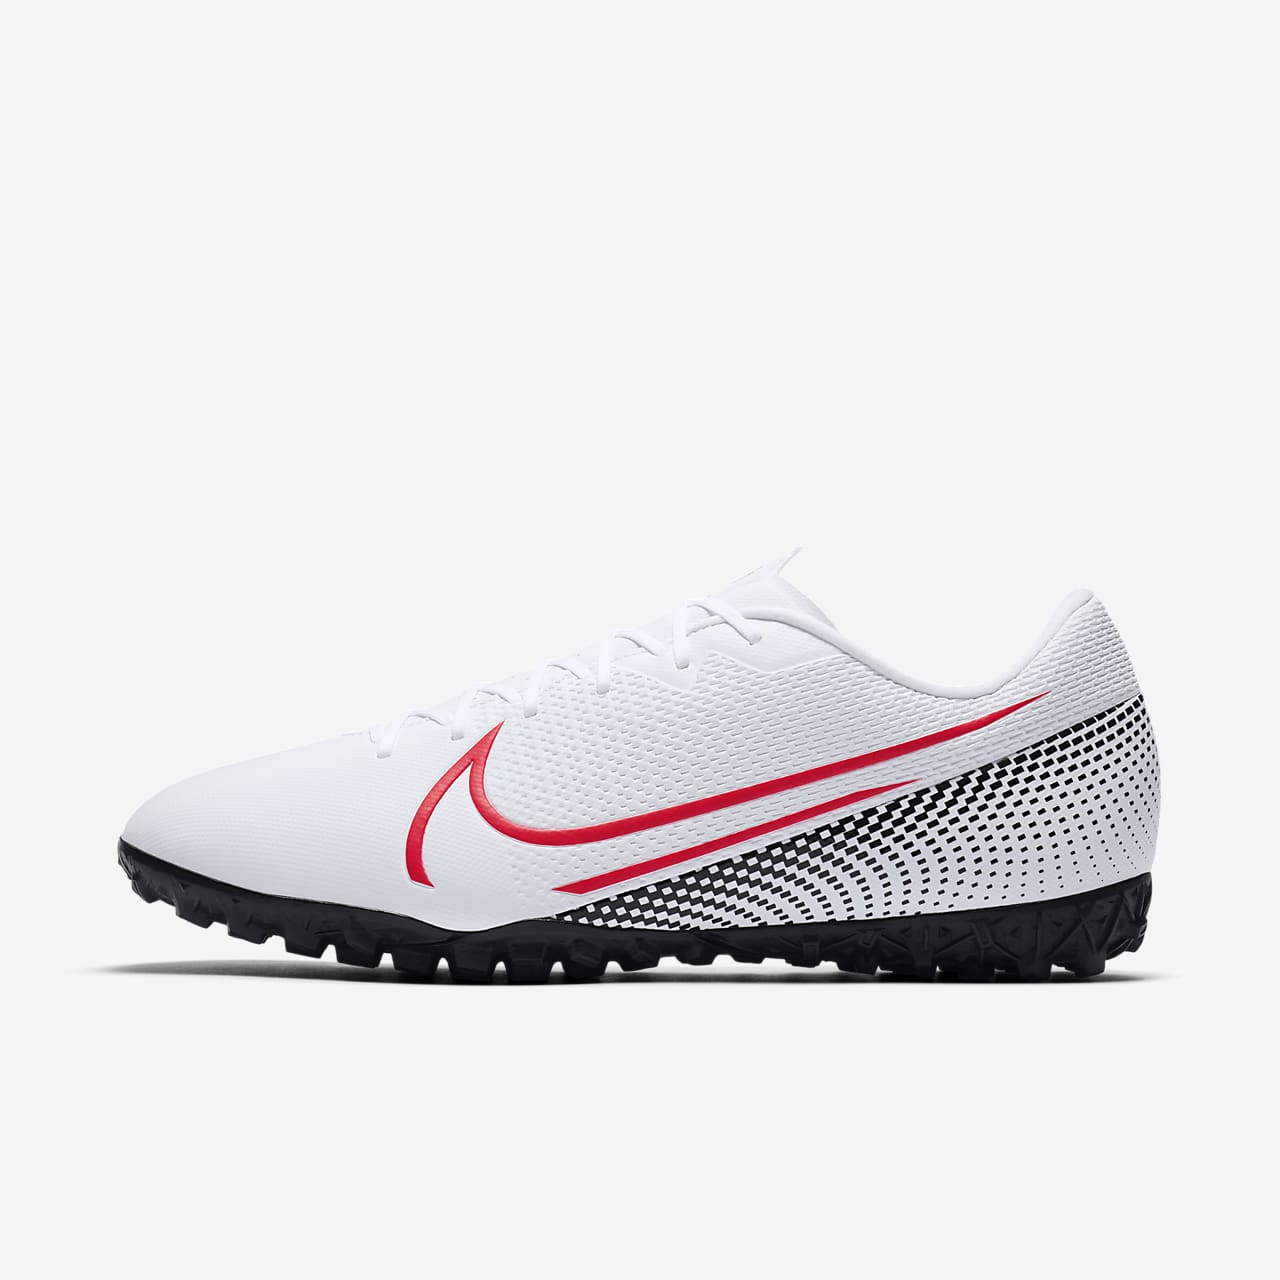 Disturbare Enorme Collettivo  Nike Mercurial Vapor 13 Academy TF Turf Football Shoe. Nike LU